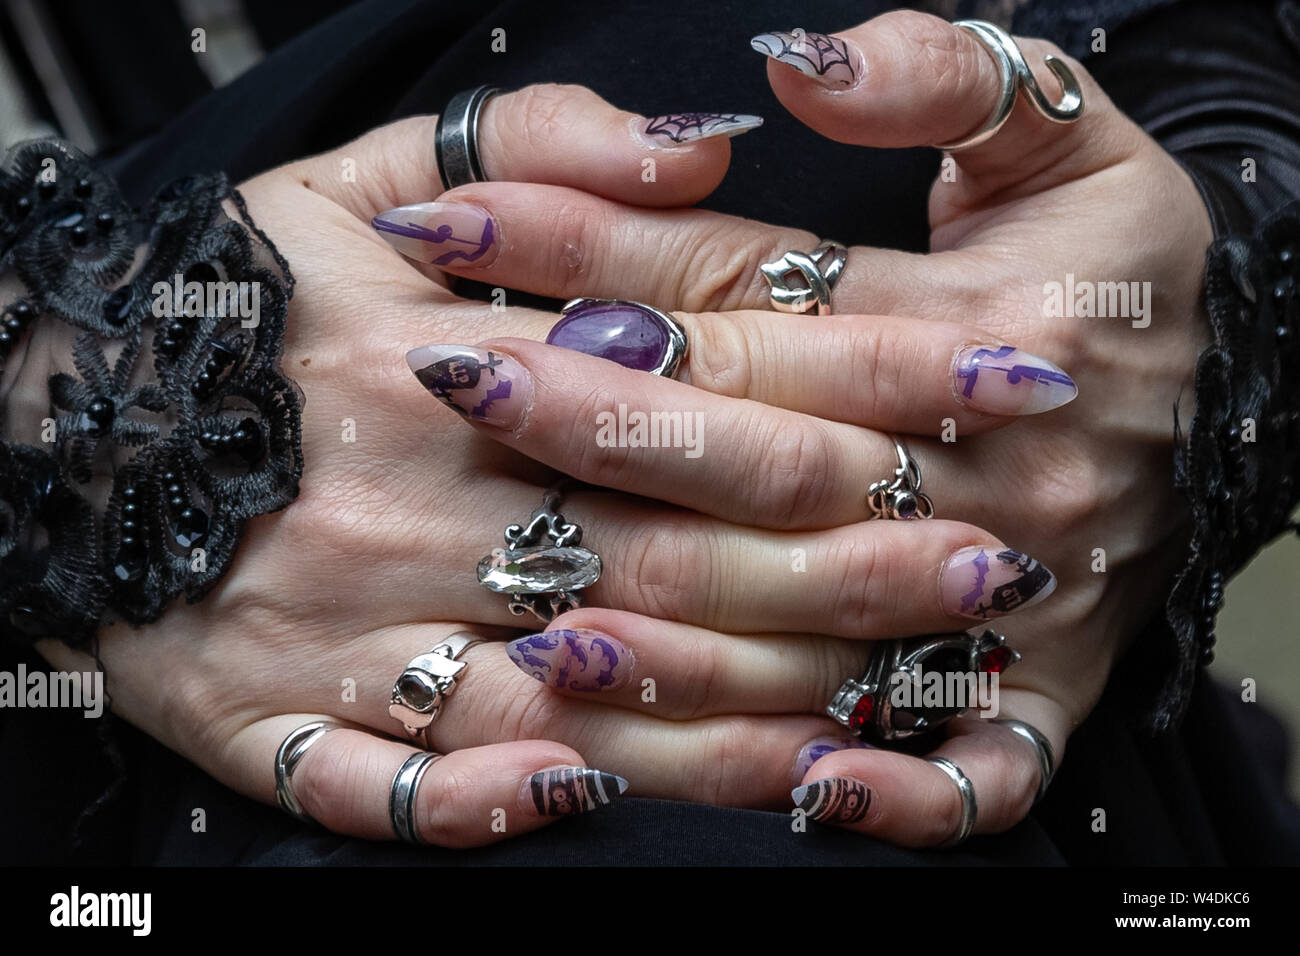 London, UK. 21st July 2019. Members of London Vampire Society and other goths attend the annual Brompton Cemetery Open Day. Credit: Guy Corbishley/Alamy Live News Stock Photo